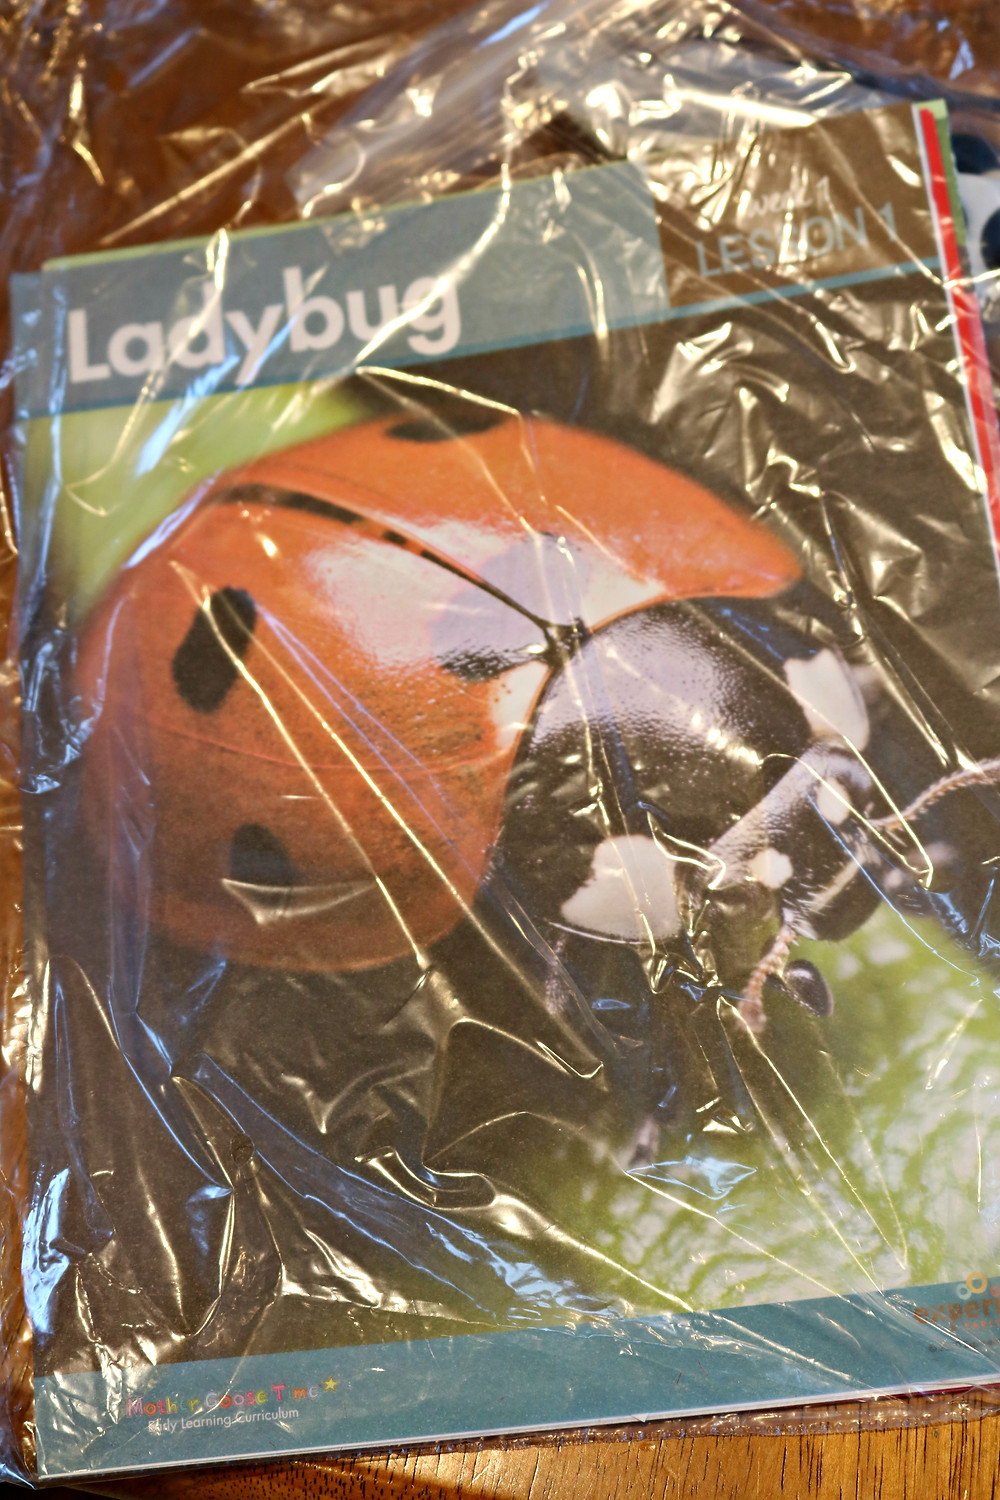 Ladybug Daily Discovery Bag filled with Lesson 1 supplies